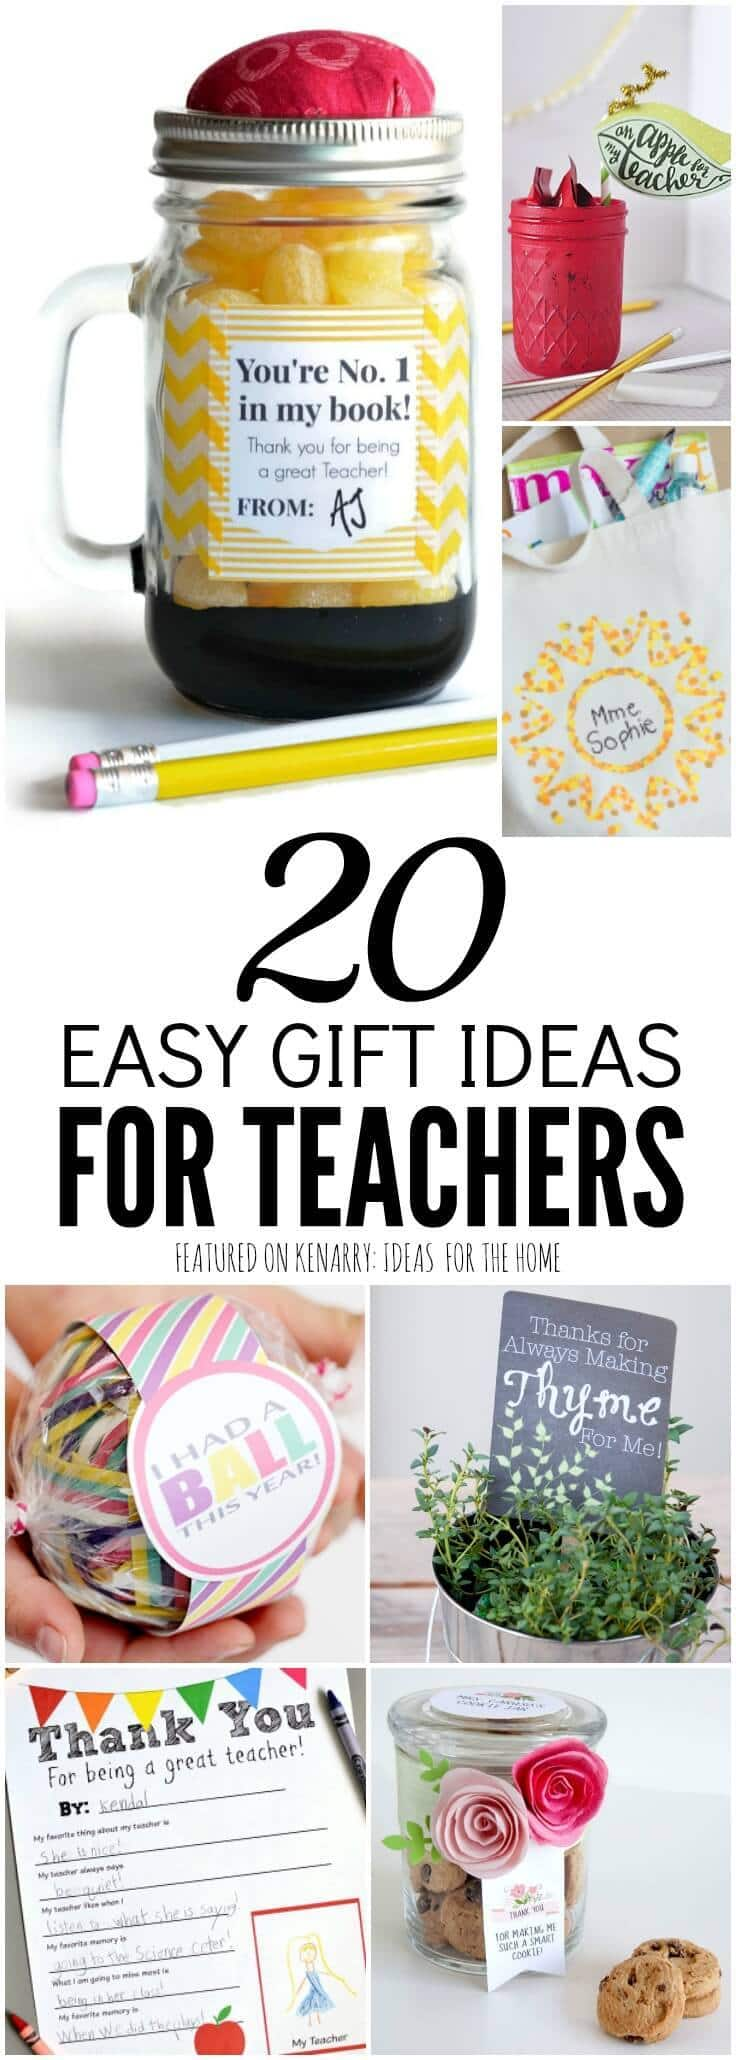 These Crafts And Free Printables Are Clever Unique Teacher Gift Ideas For Appreciation Week